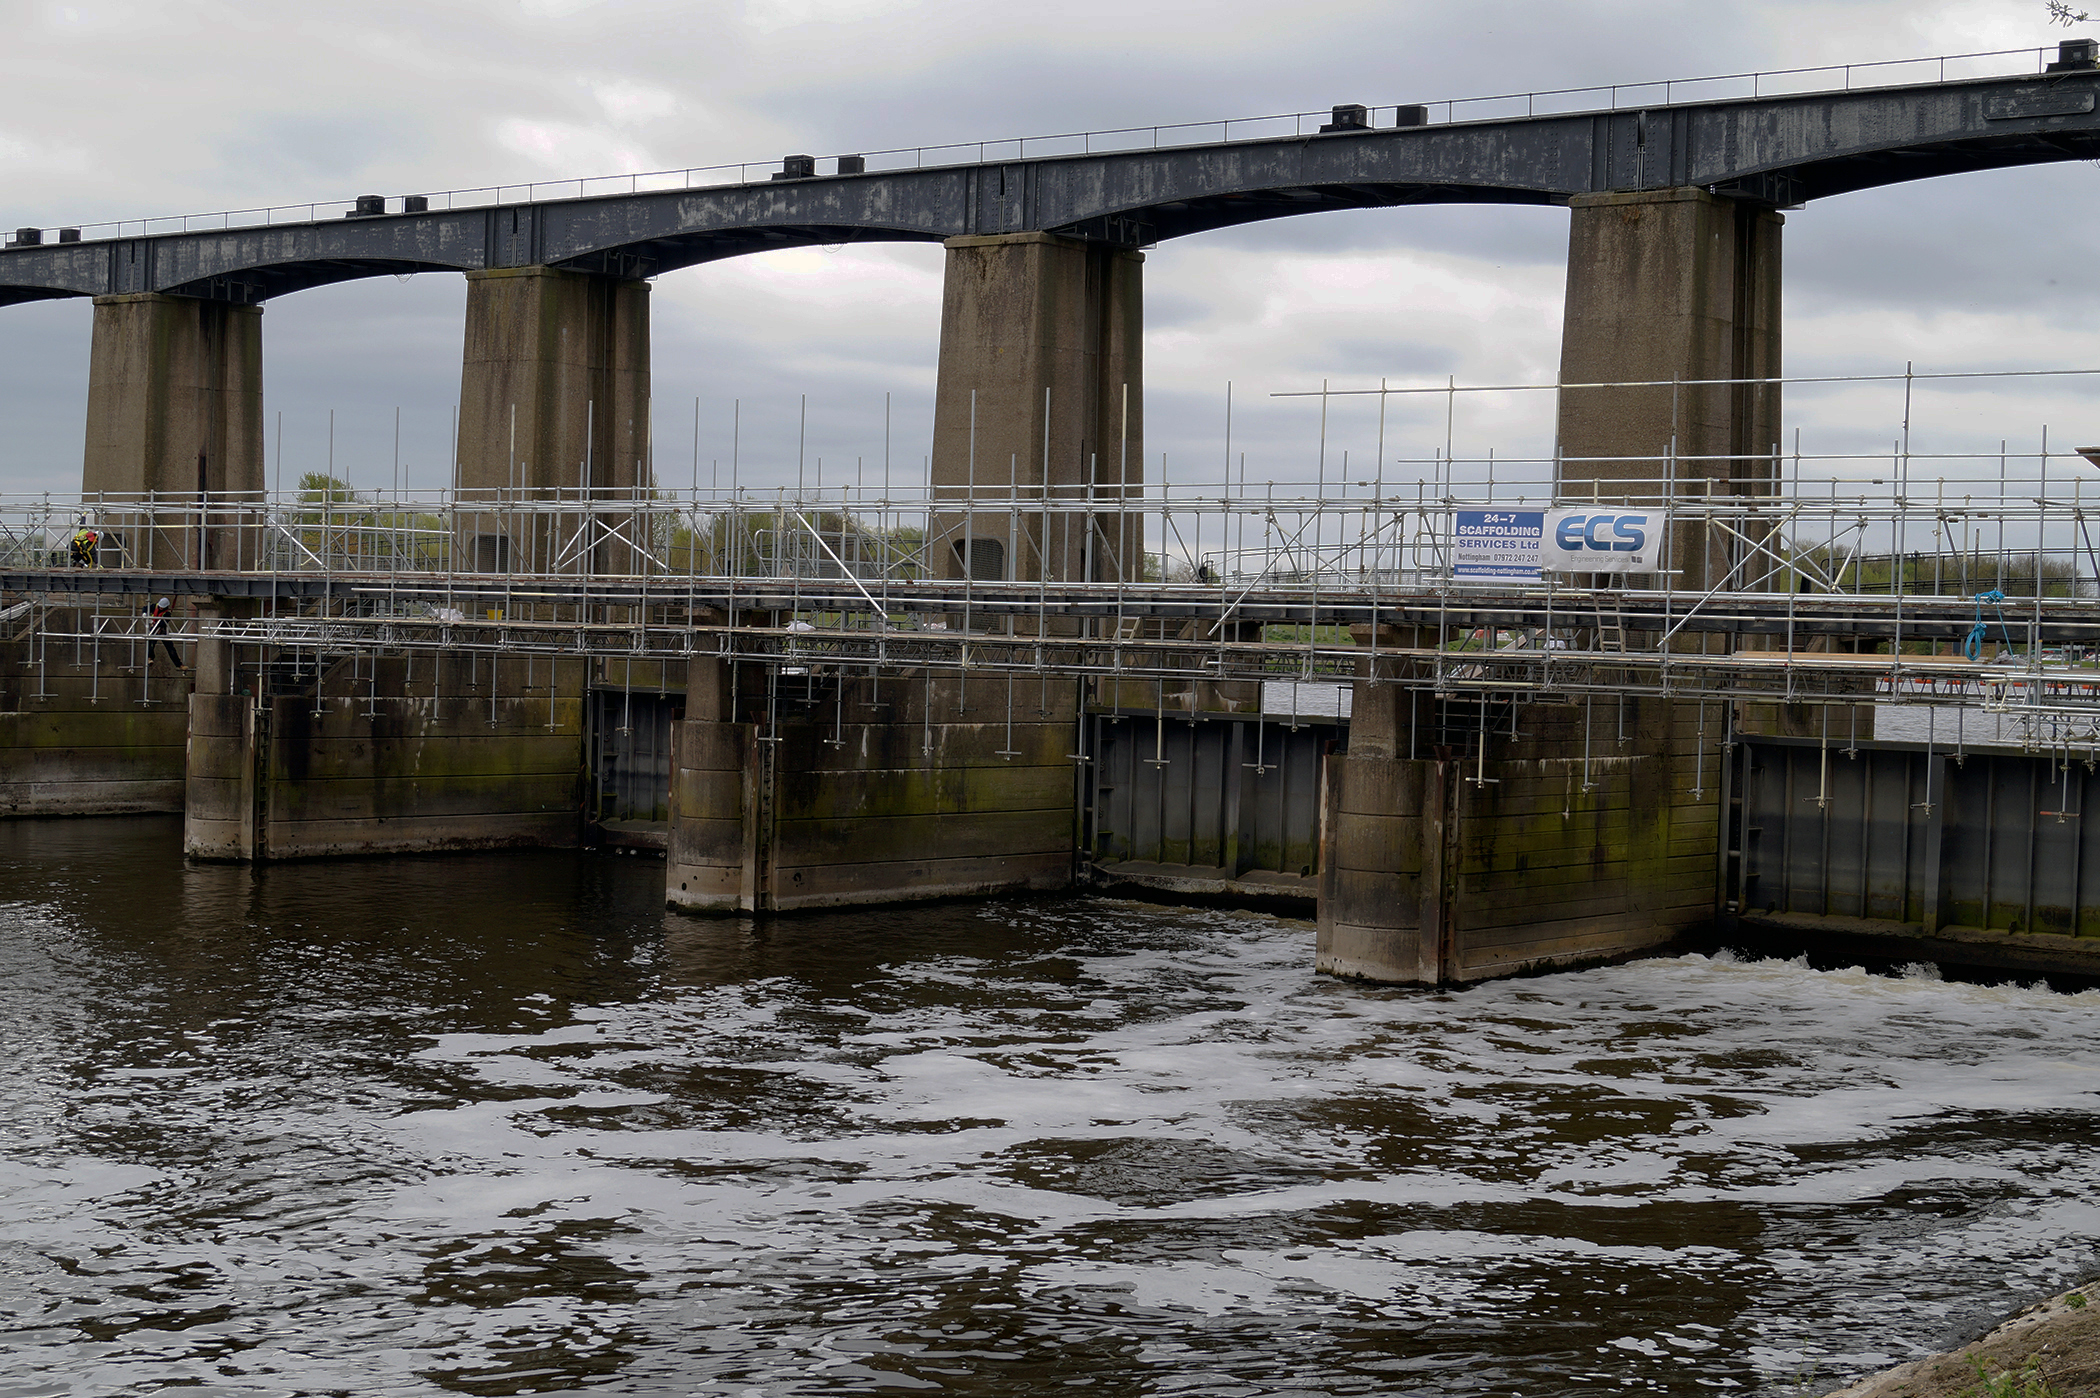 Repainting of Colwick Sluice awarded to ECS Engineering Services